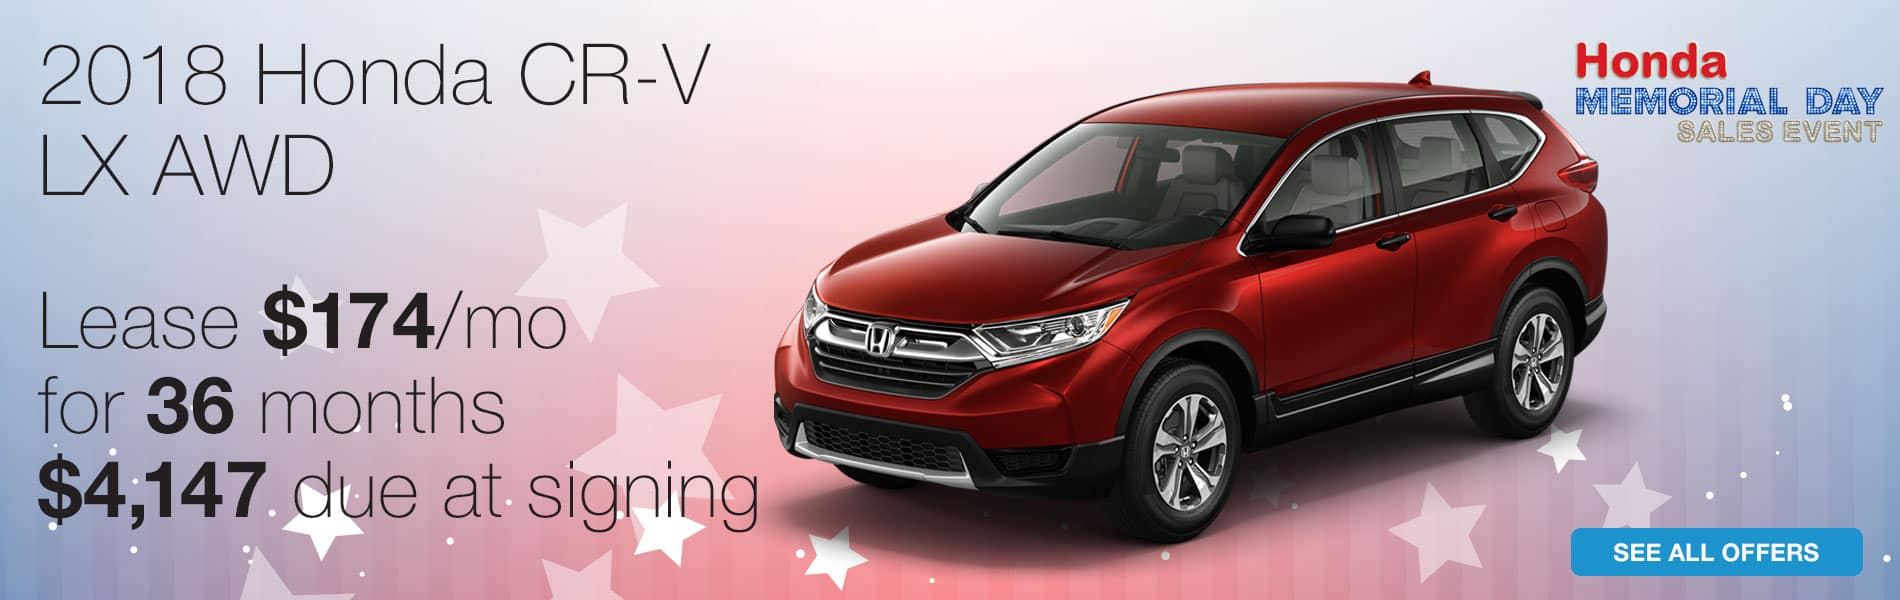 Lease a 2018 Honda CR-V LX AWD for $174 per month with $4,147 due at signing.